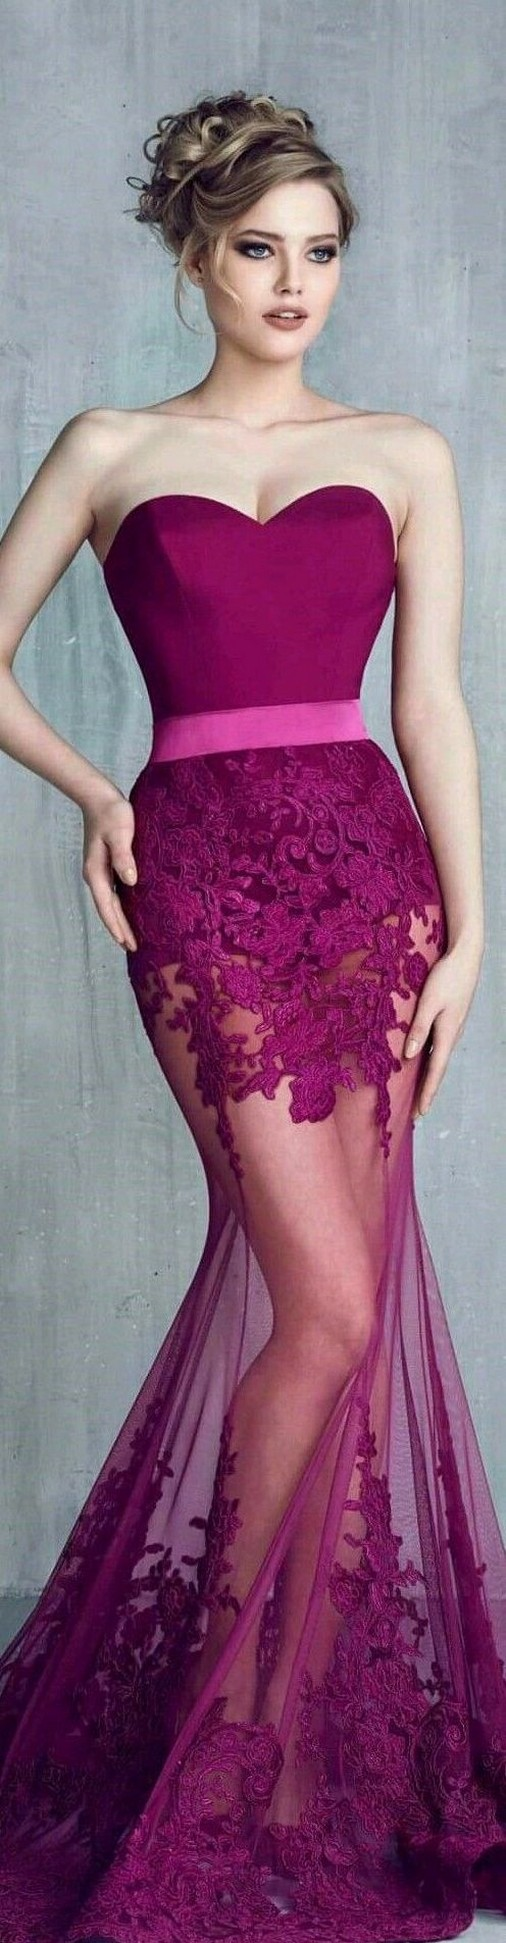 100+ Beautiful Christmas Party Dresses Ideas